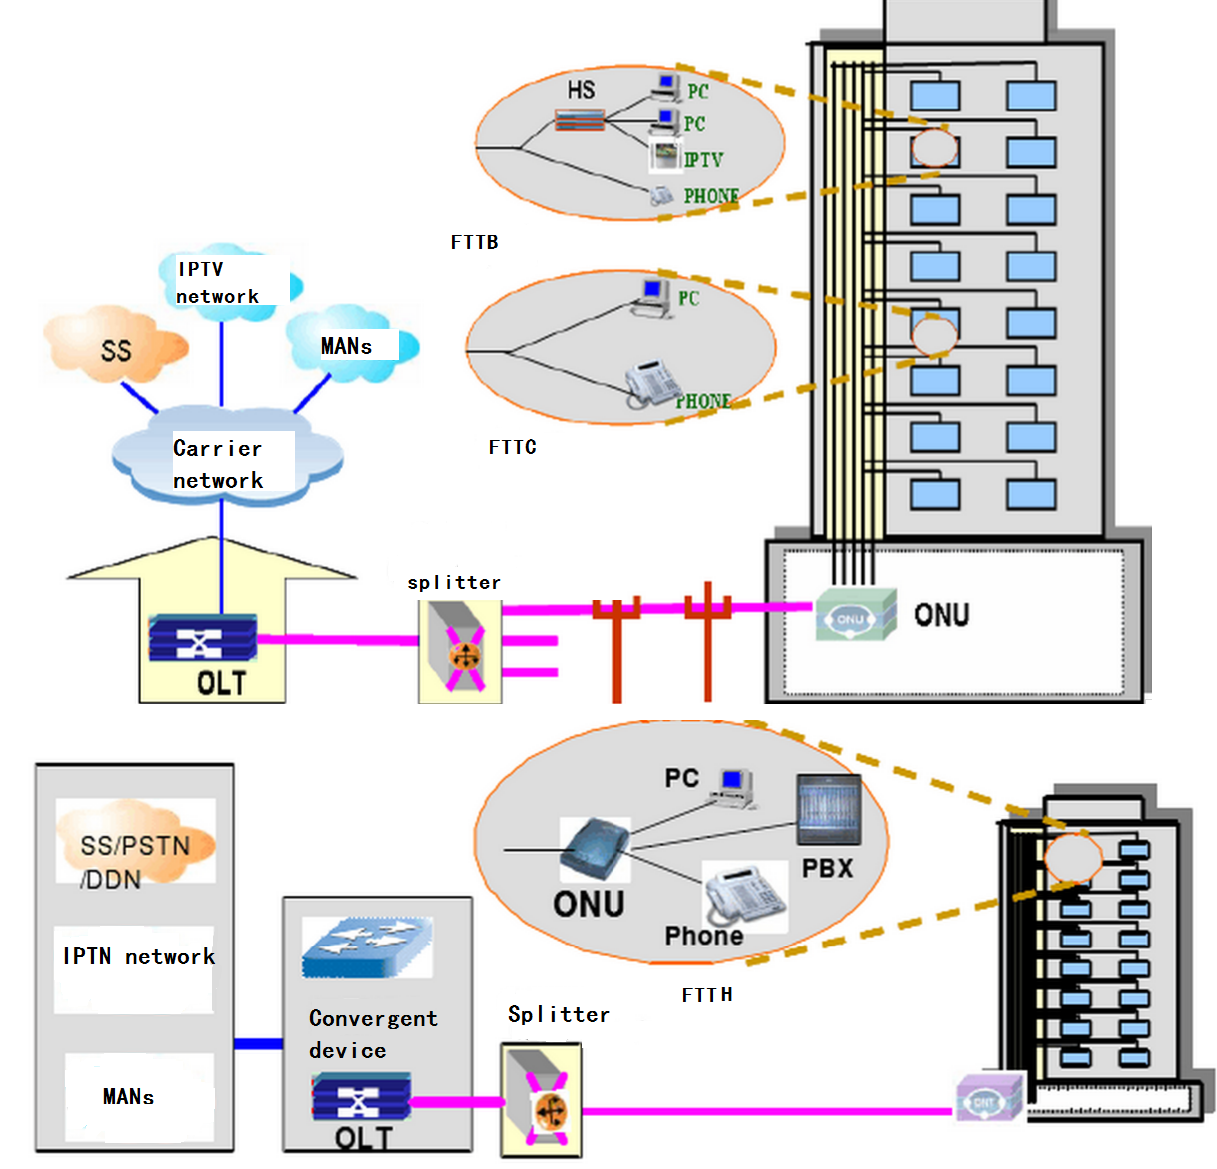 Application of EPON in FTTB, FTTC and FTTH